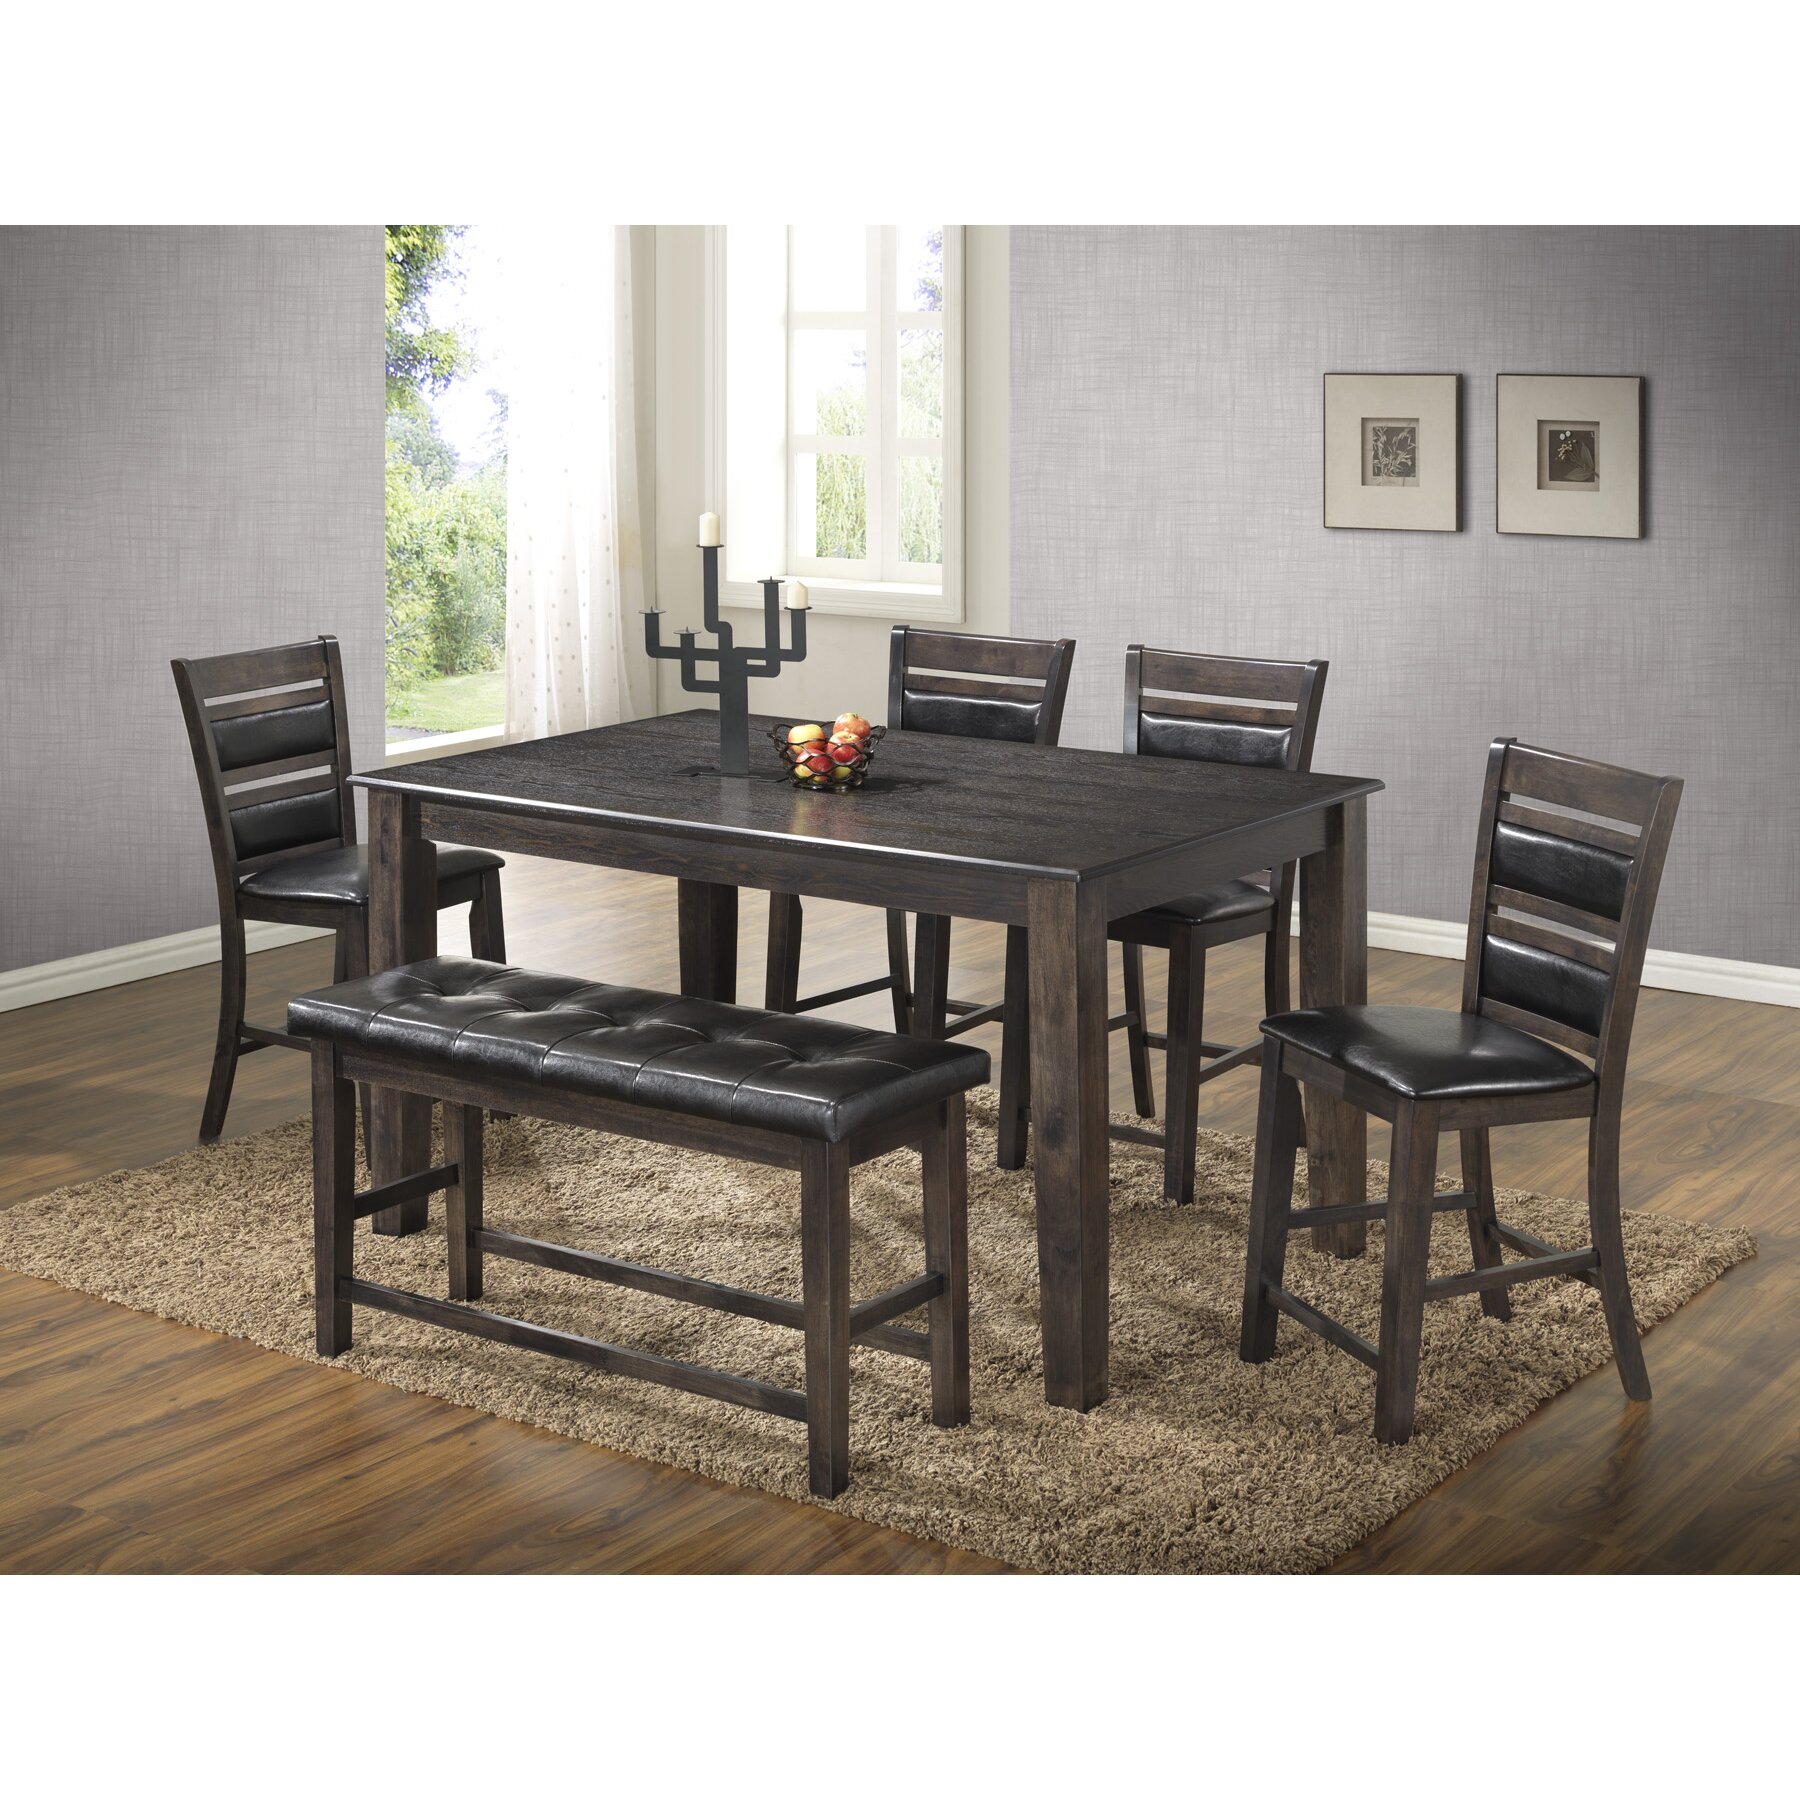 Best quality furniture 6 piece dining set reviews wayfair for Furniture quality reviews